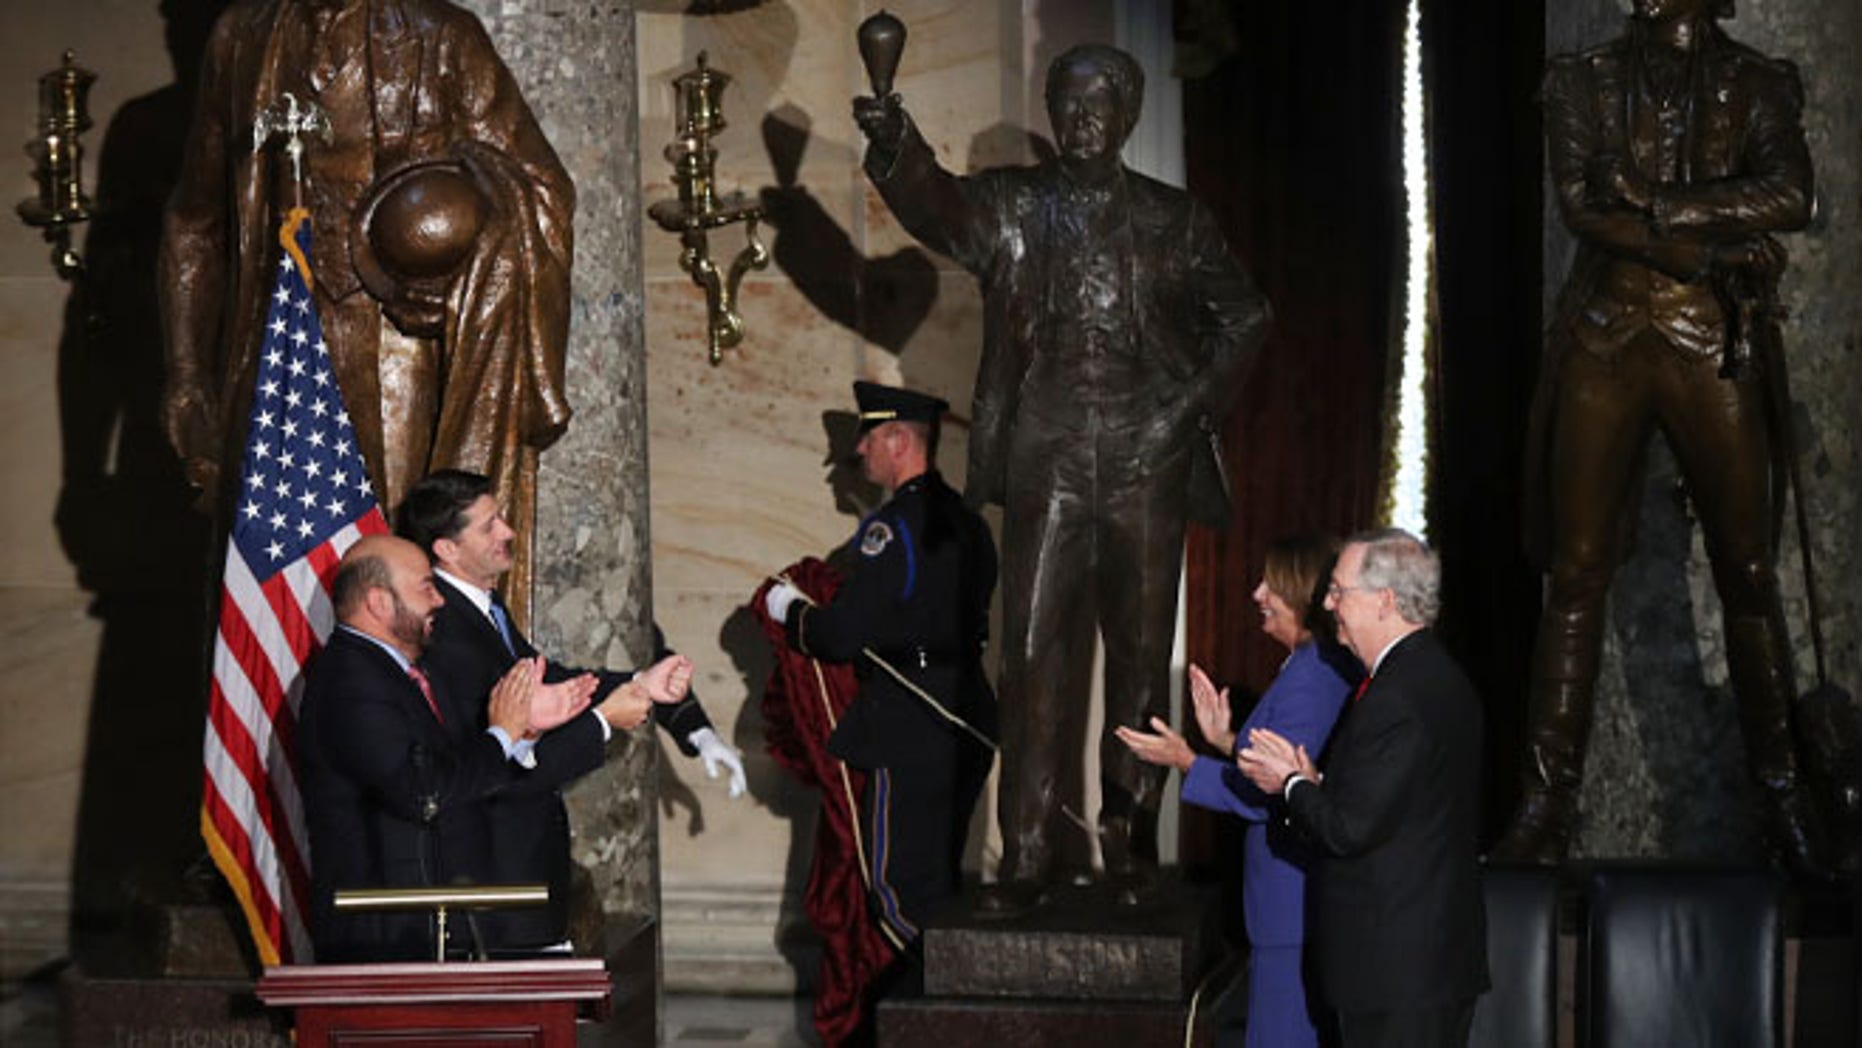 From left, Ohio House of Representatives Speaker Cliff Rosenberger, House Speaker Paul Ryan of Wis., House Minority Leader Nancy Pelosi of Calif., and Senate Majority Leader Mitch McConnell of Ky., applaud during the unveiling of the statue of Thomas Edison in Statuary Hall on Capitol Hill in Washington, Wednesday, Sept. 21, 2016. (AP Photo/Manuel Balce Ceneta)